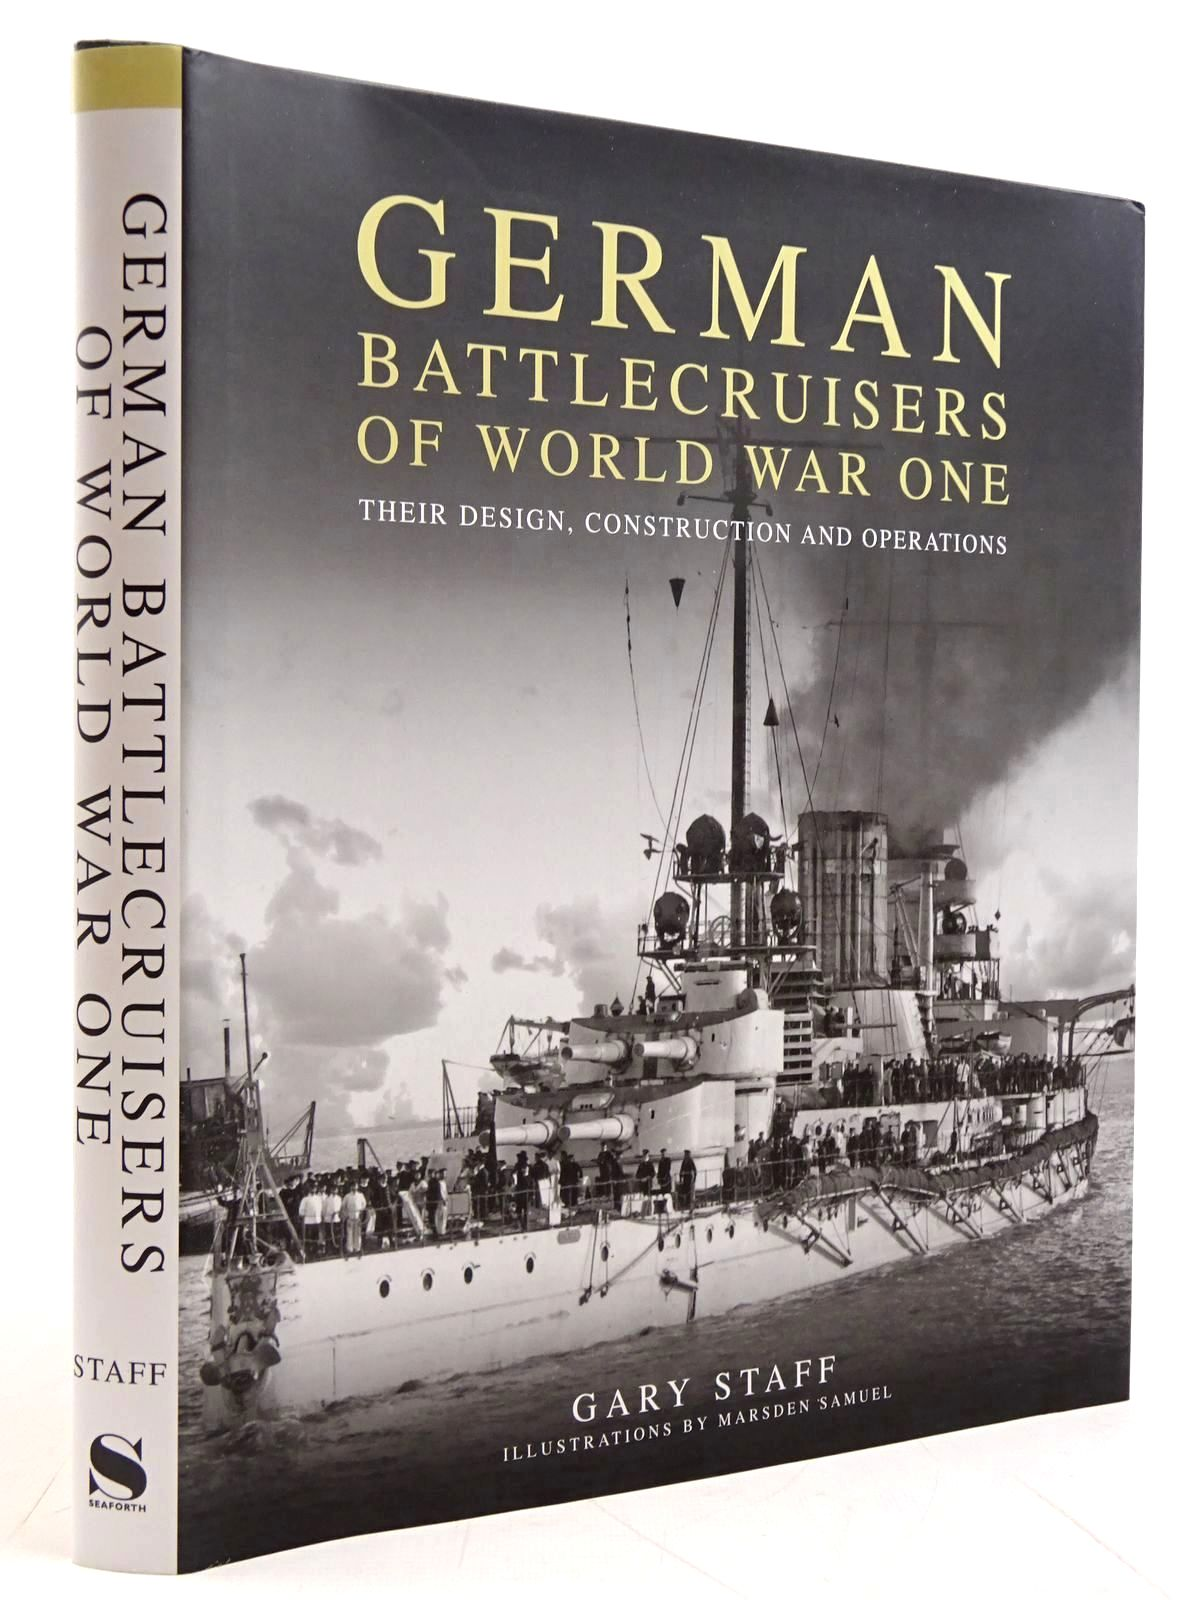 Photo of GERMAN BATTLECRUISERS OF WORLD WAR ONE THEIR DESIGN, CONSTRUCTION AND OPERATIONS written by Staff, Gary illustrated by Samuel, Marsden published by Seaforth Publishing (STOCK CODE: 2131306)  for sale by Stella & Rose's Books